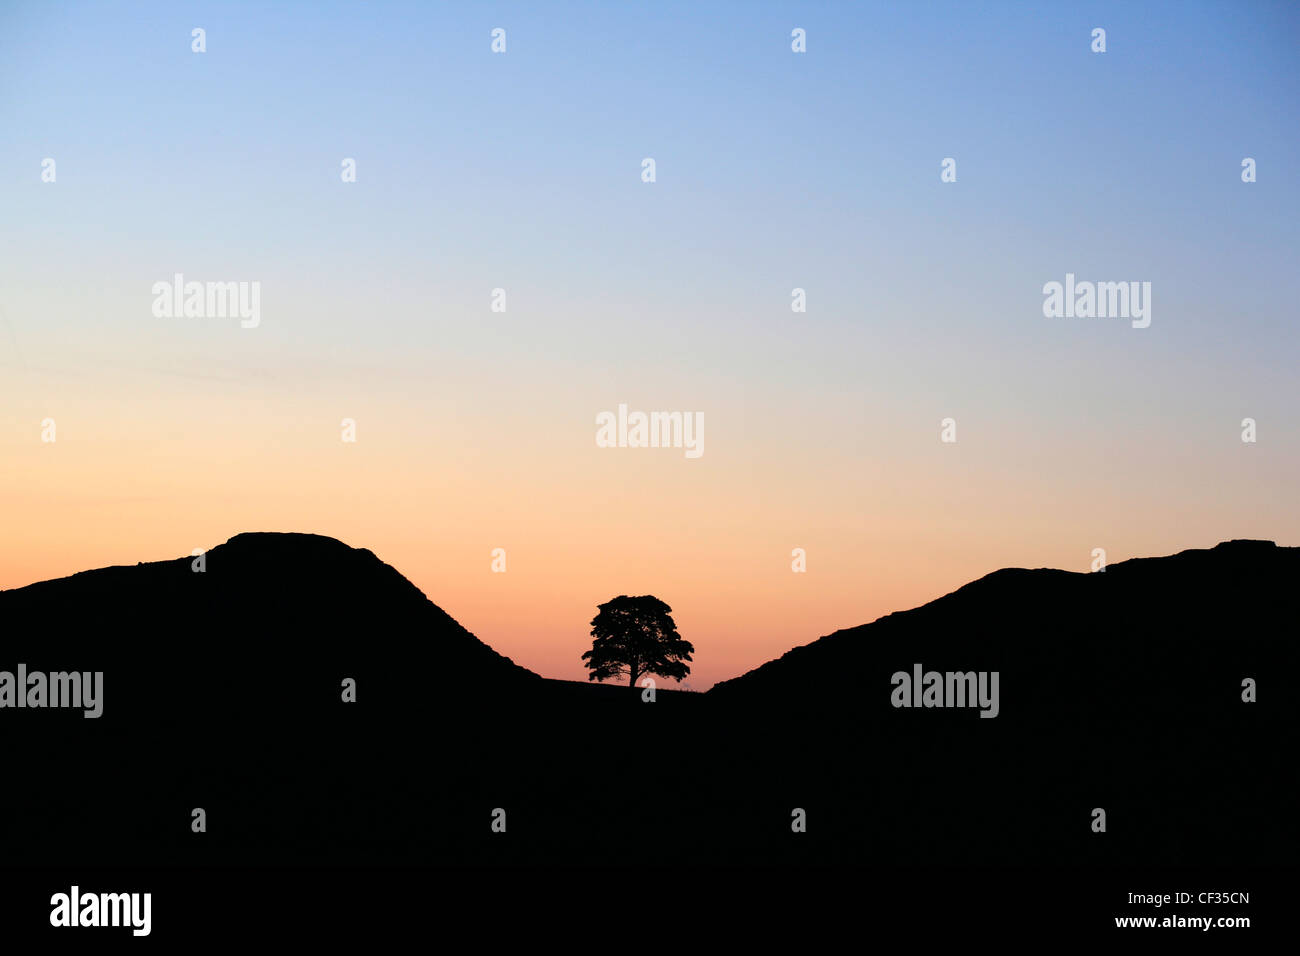 Sycamore Gap at Hadrian's Wall in silhouette. - Stock Image